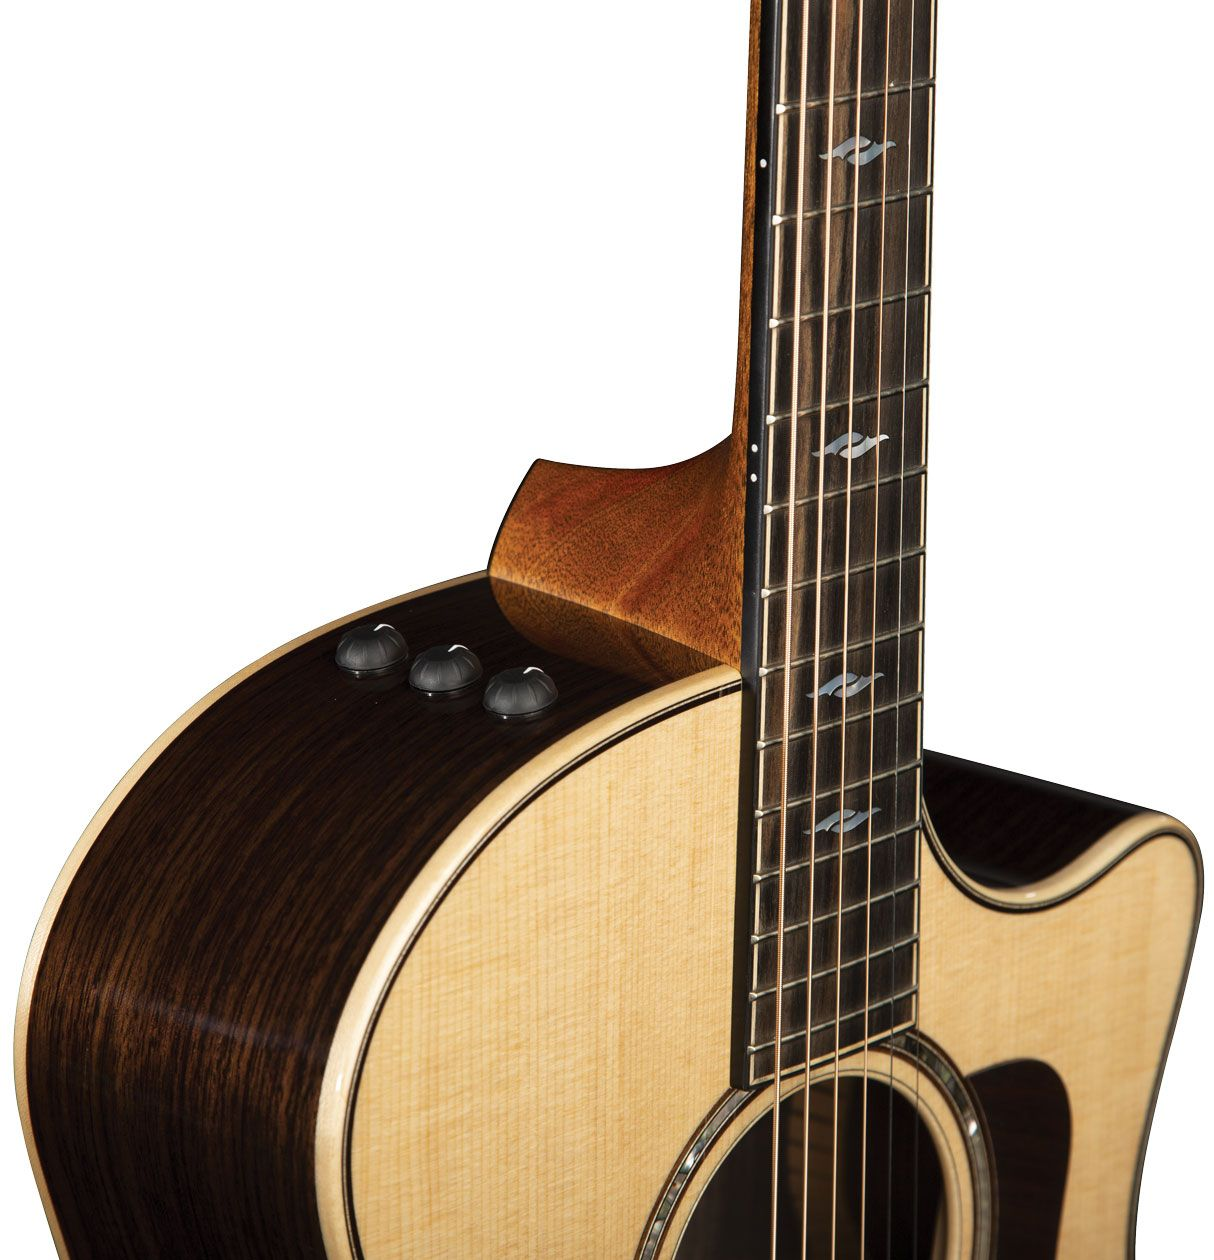 Acoustic Soundboard The Virtues Of A Stiff Neck Acoustic Guitar The Sonic